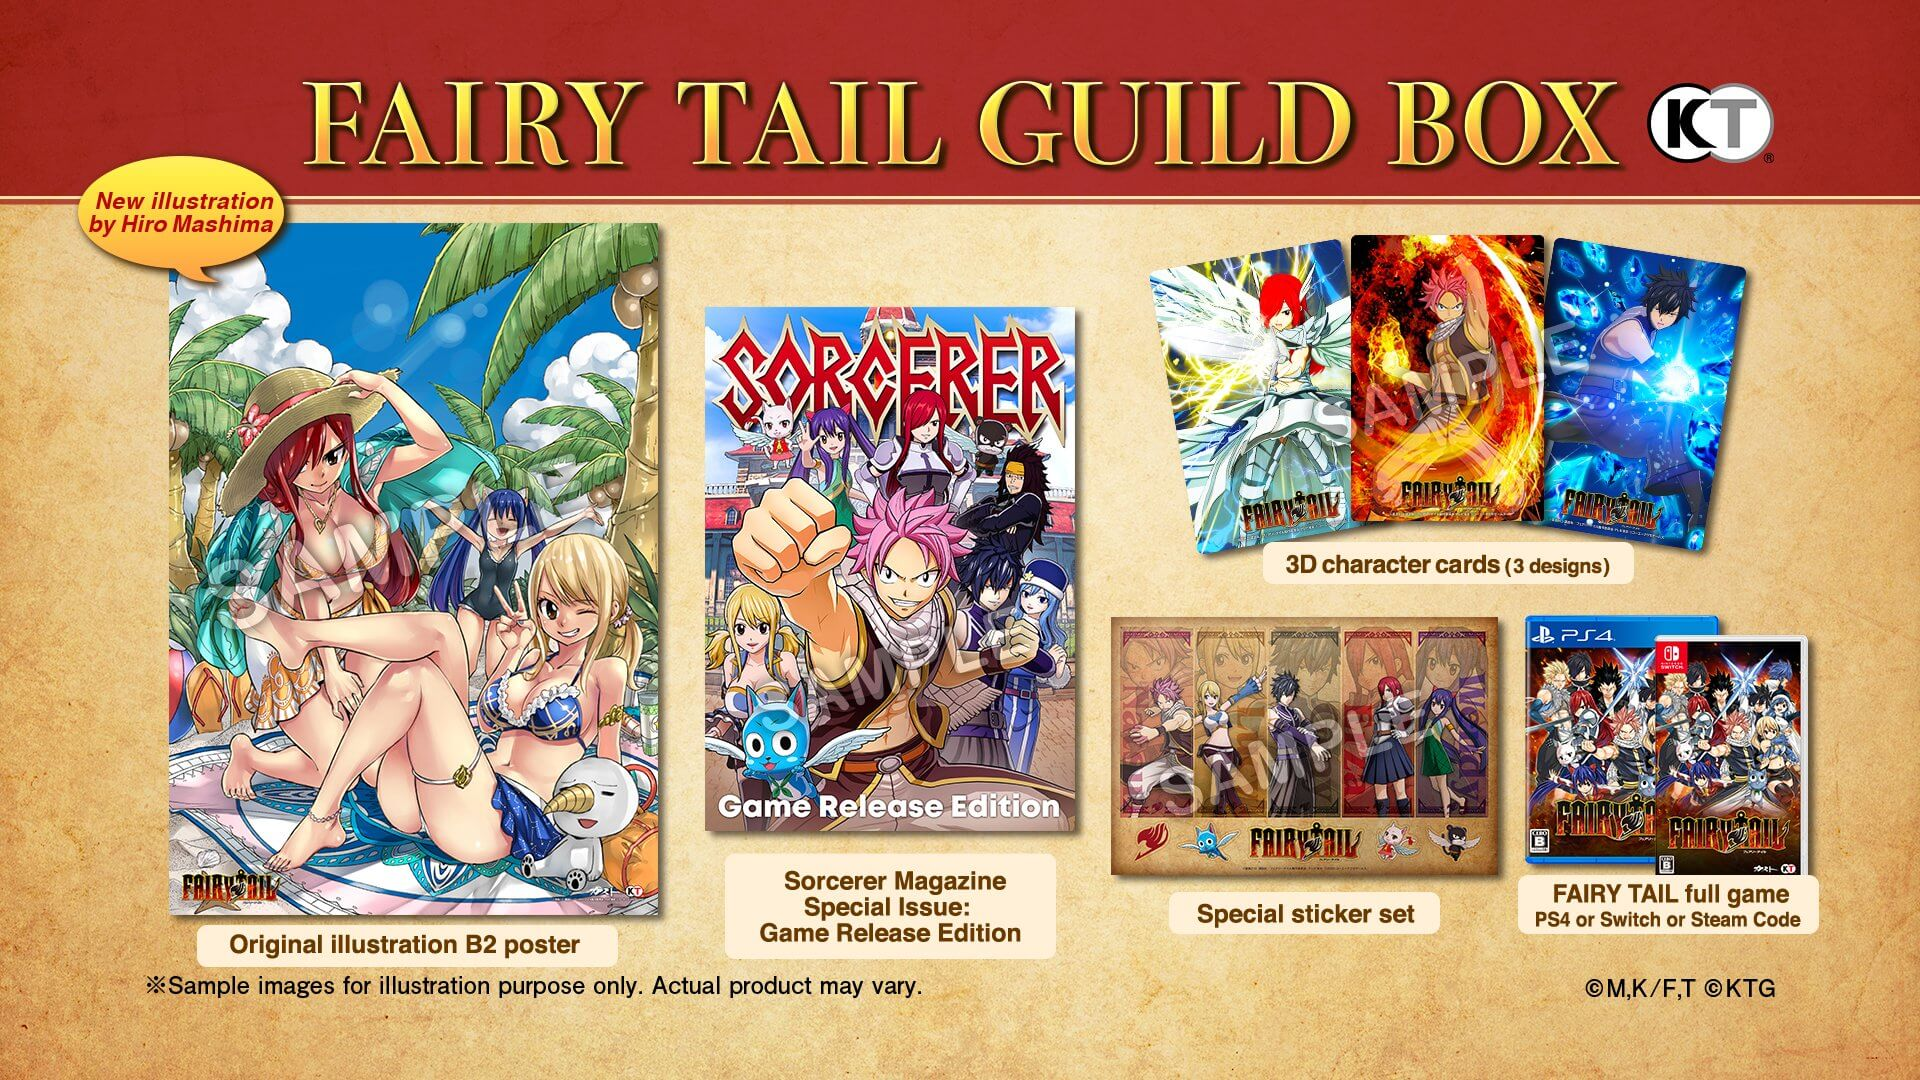 Fairy Tail - RPG revela Novo Preview Trailer